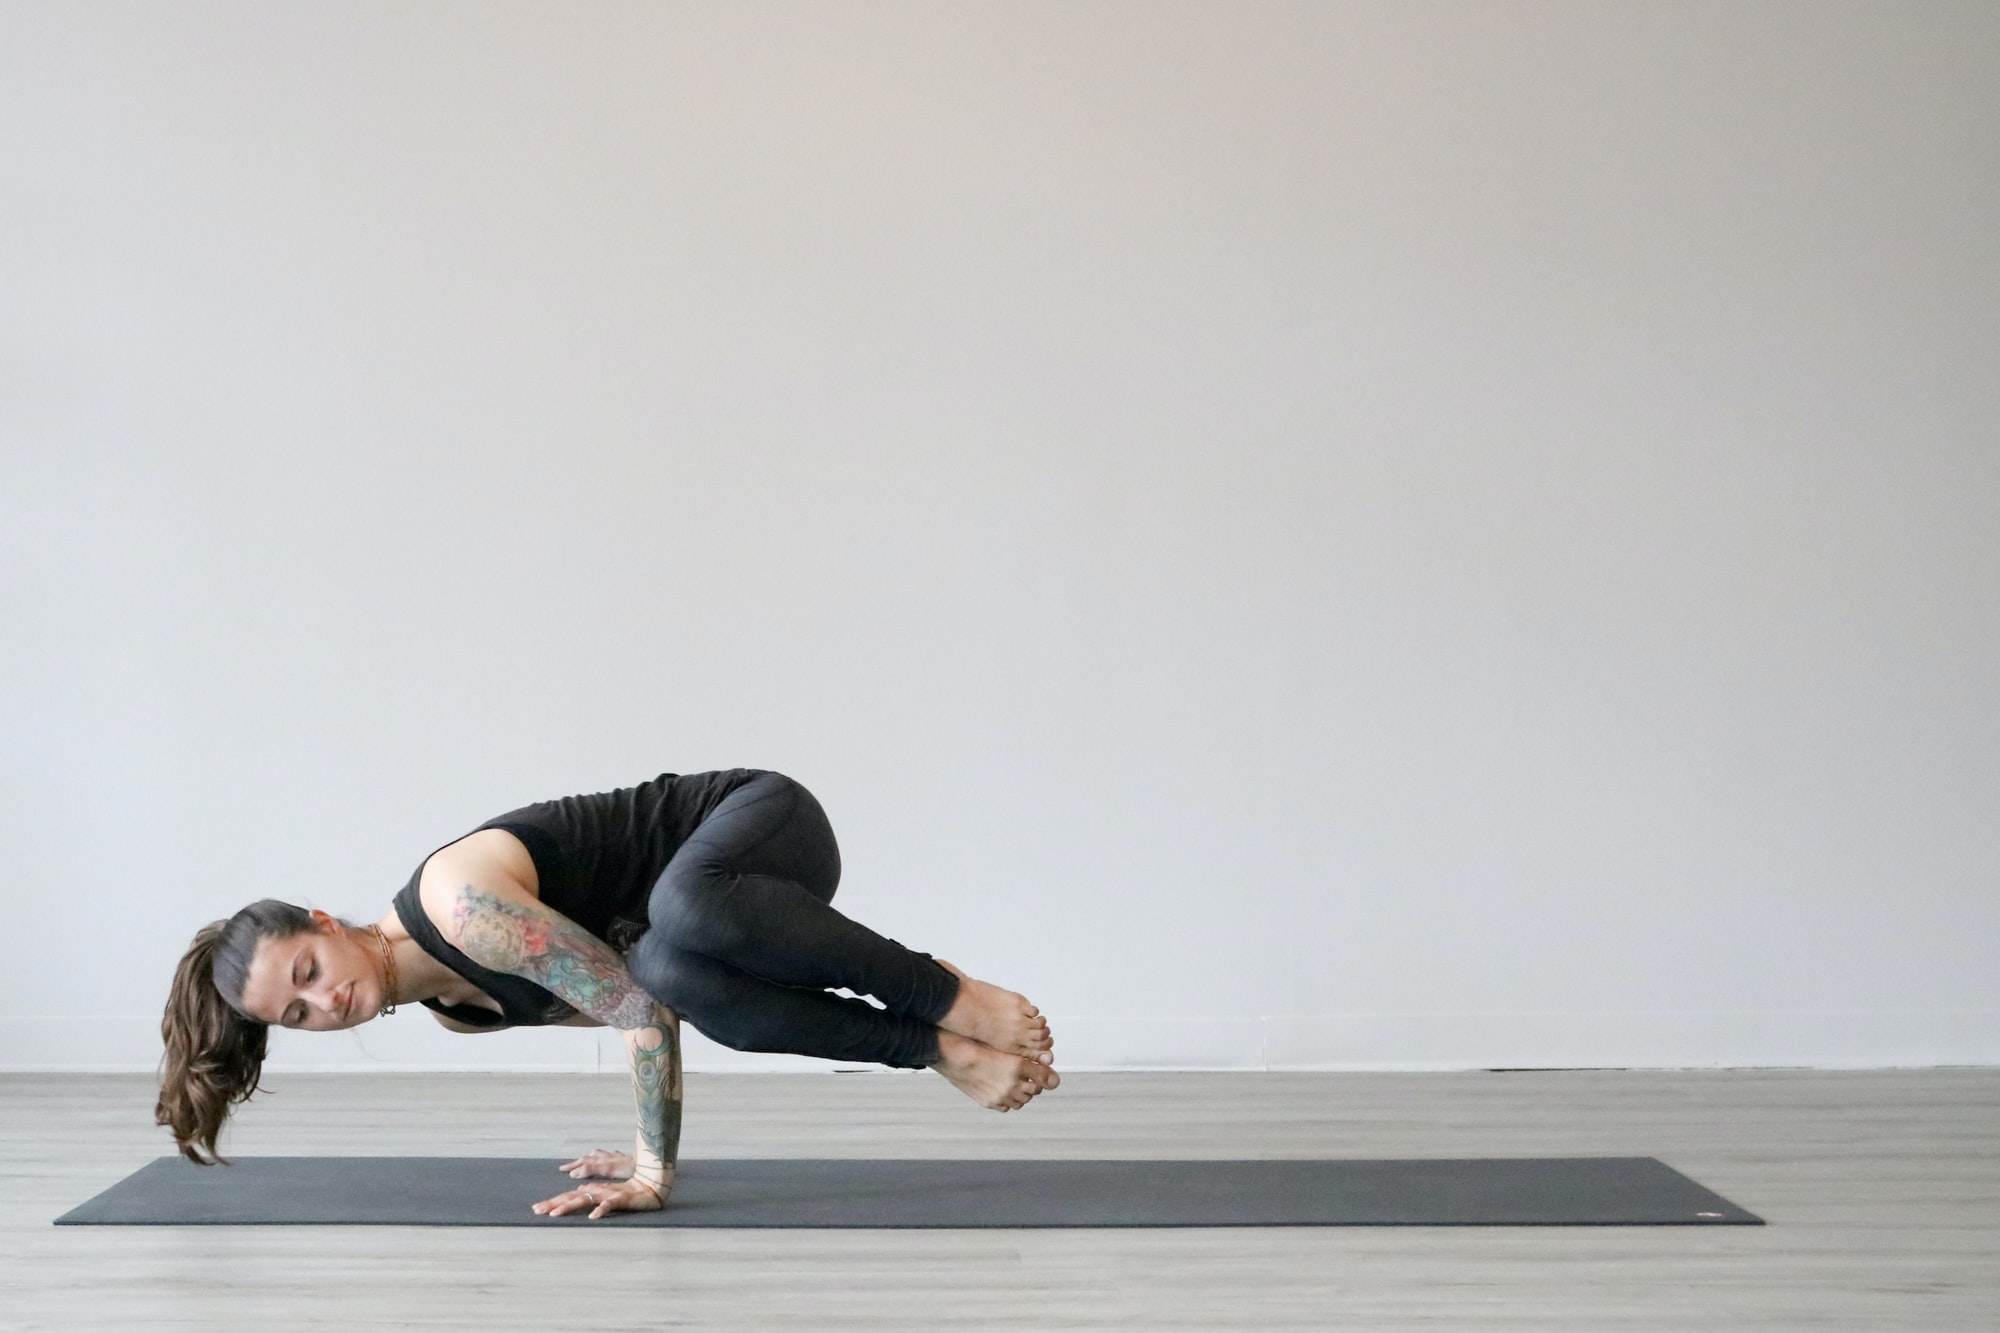 woman doing advanced yoga pose